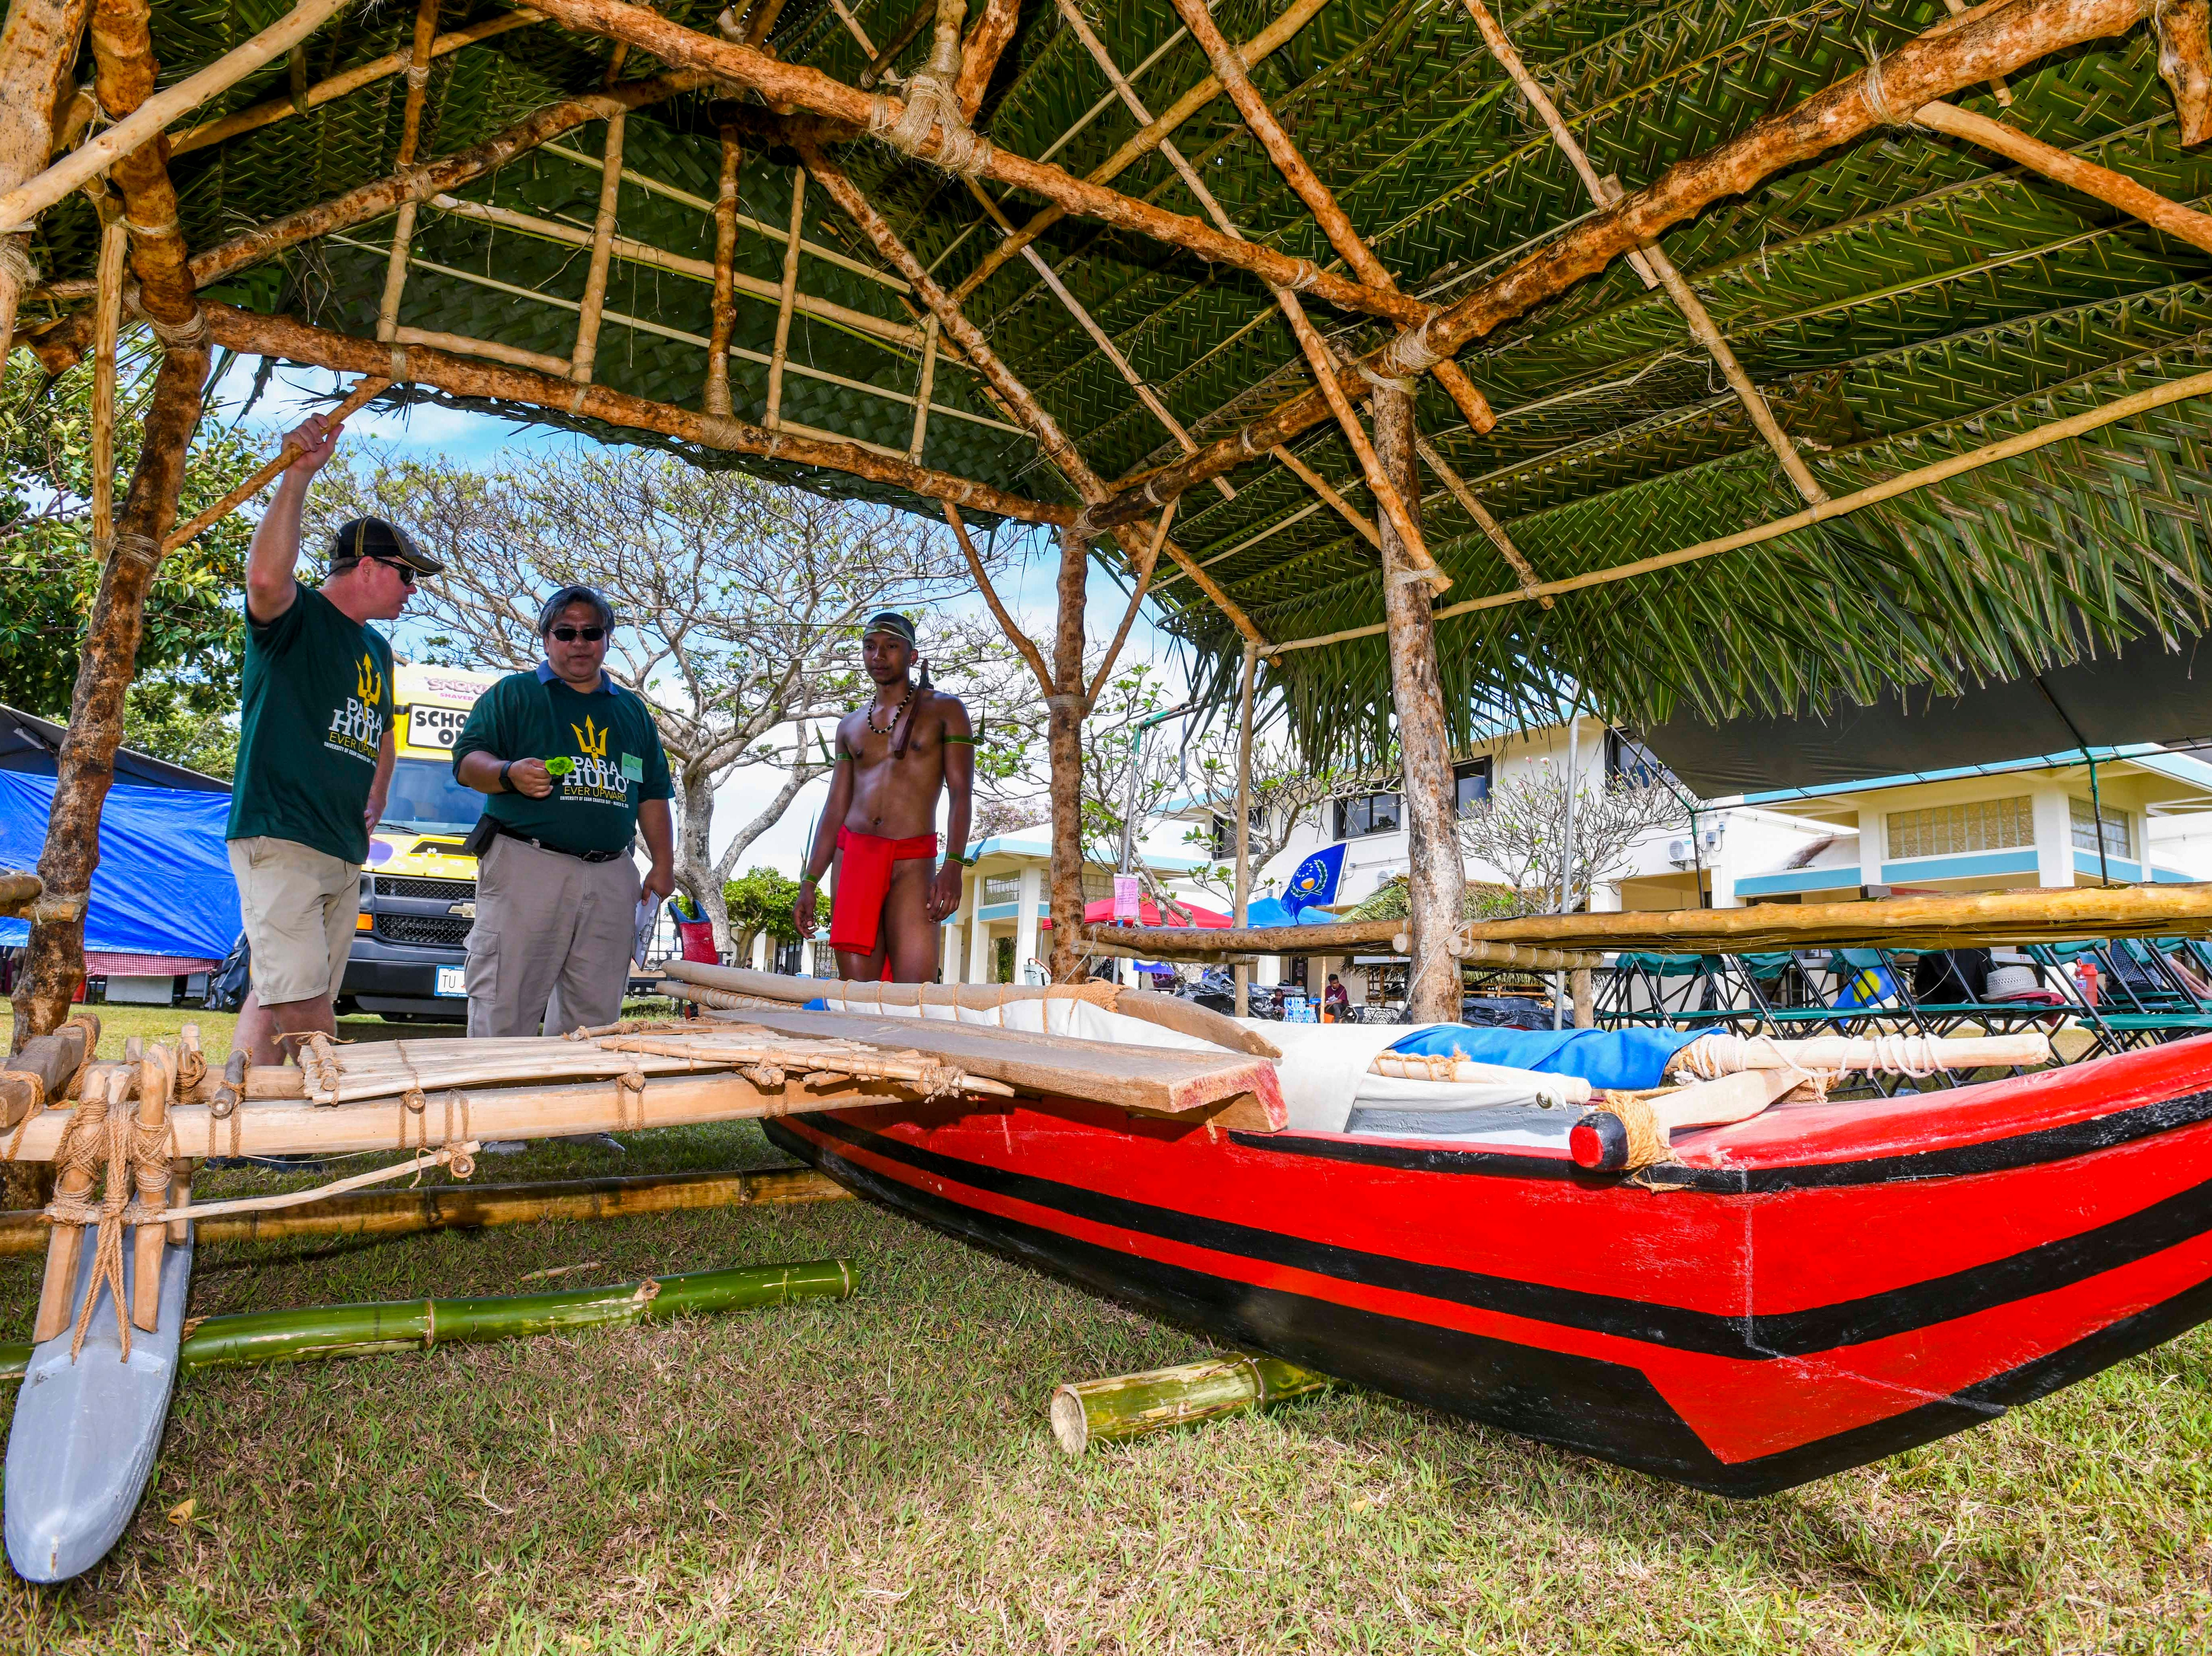 Chalan Pago-Ordot Mayor Jessy Gogue, center, inquires information about an outrigger canoe from marine biology student Alexander Rudimch, right, as he judges huts built by student organizations for the University of Guam's 51st Charter Day in Mangilao on Tuesday, March 12, 2019. Rudimch was representing the students from the Republic of Palau.